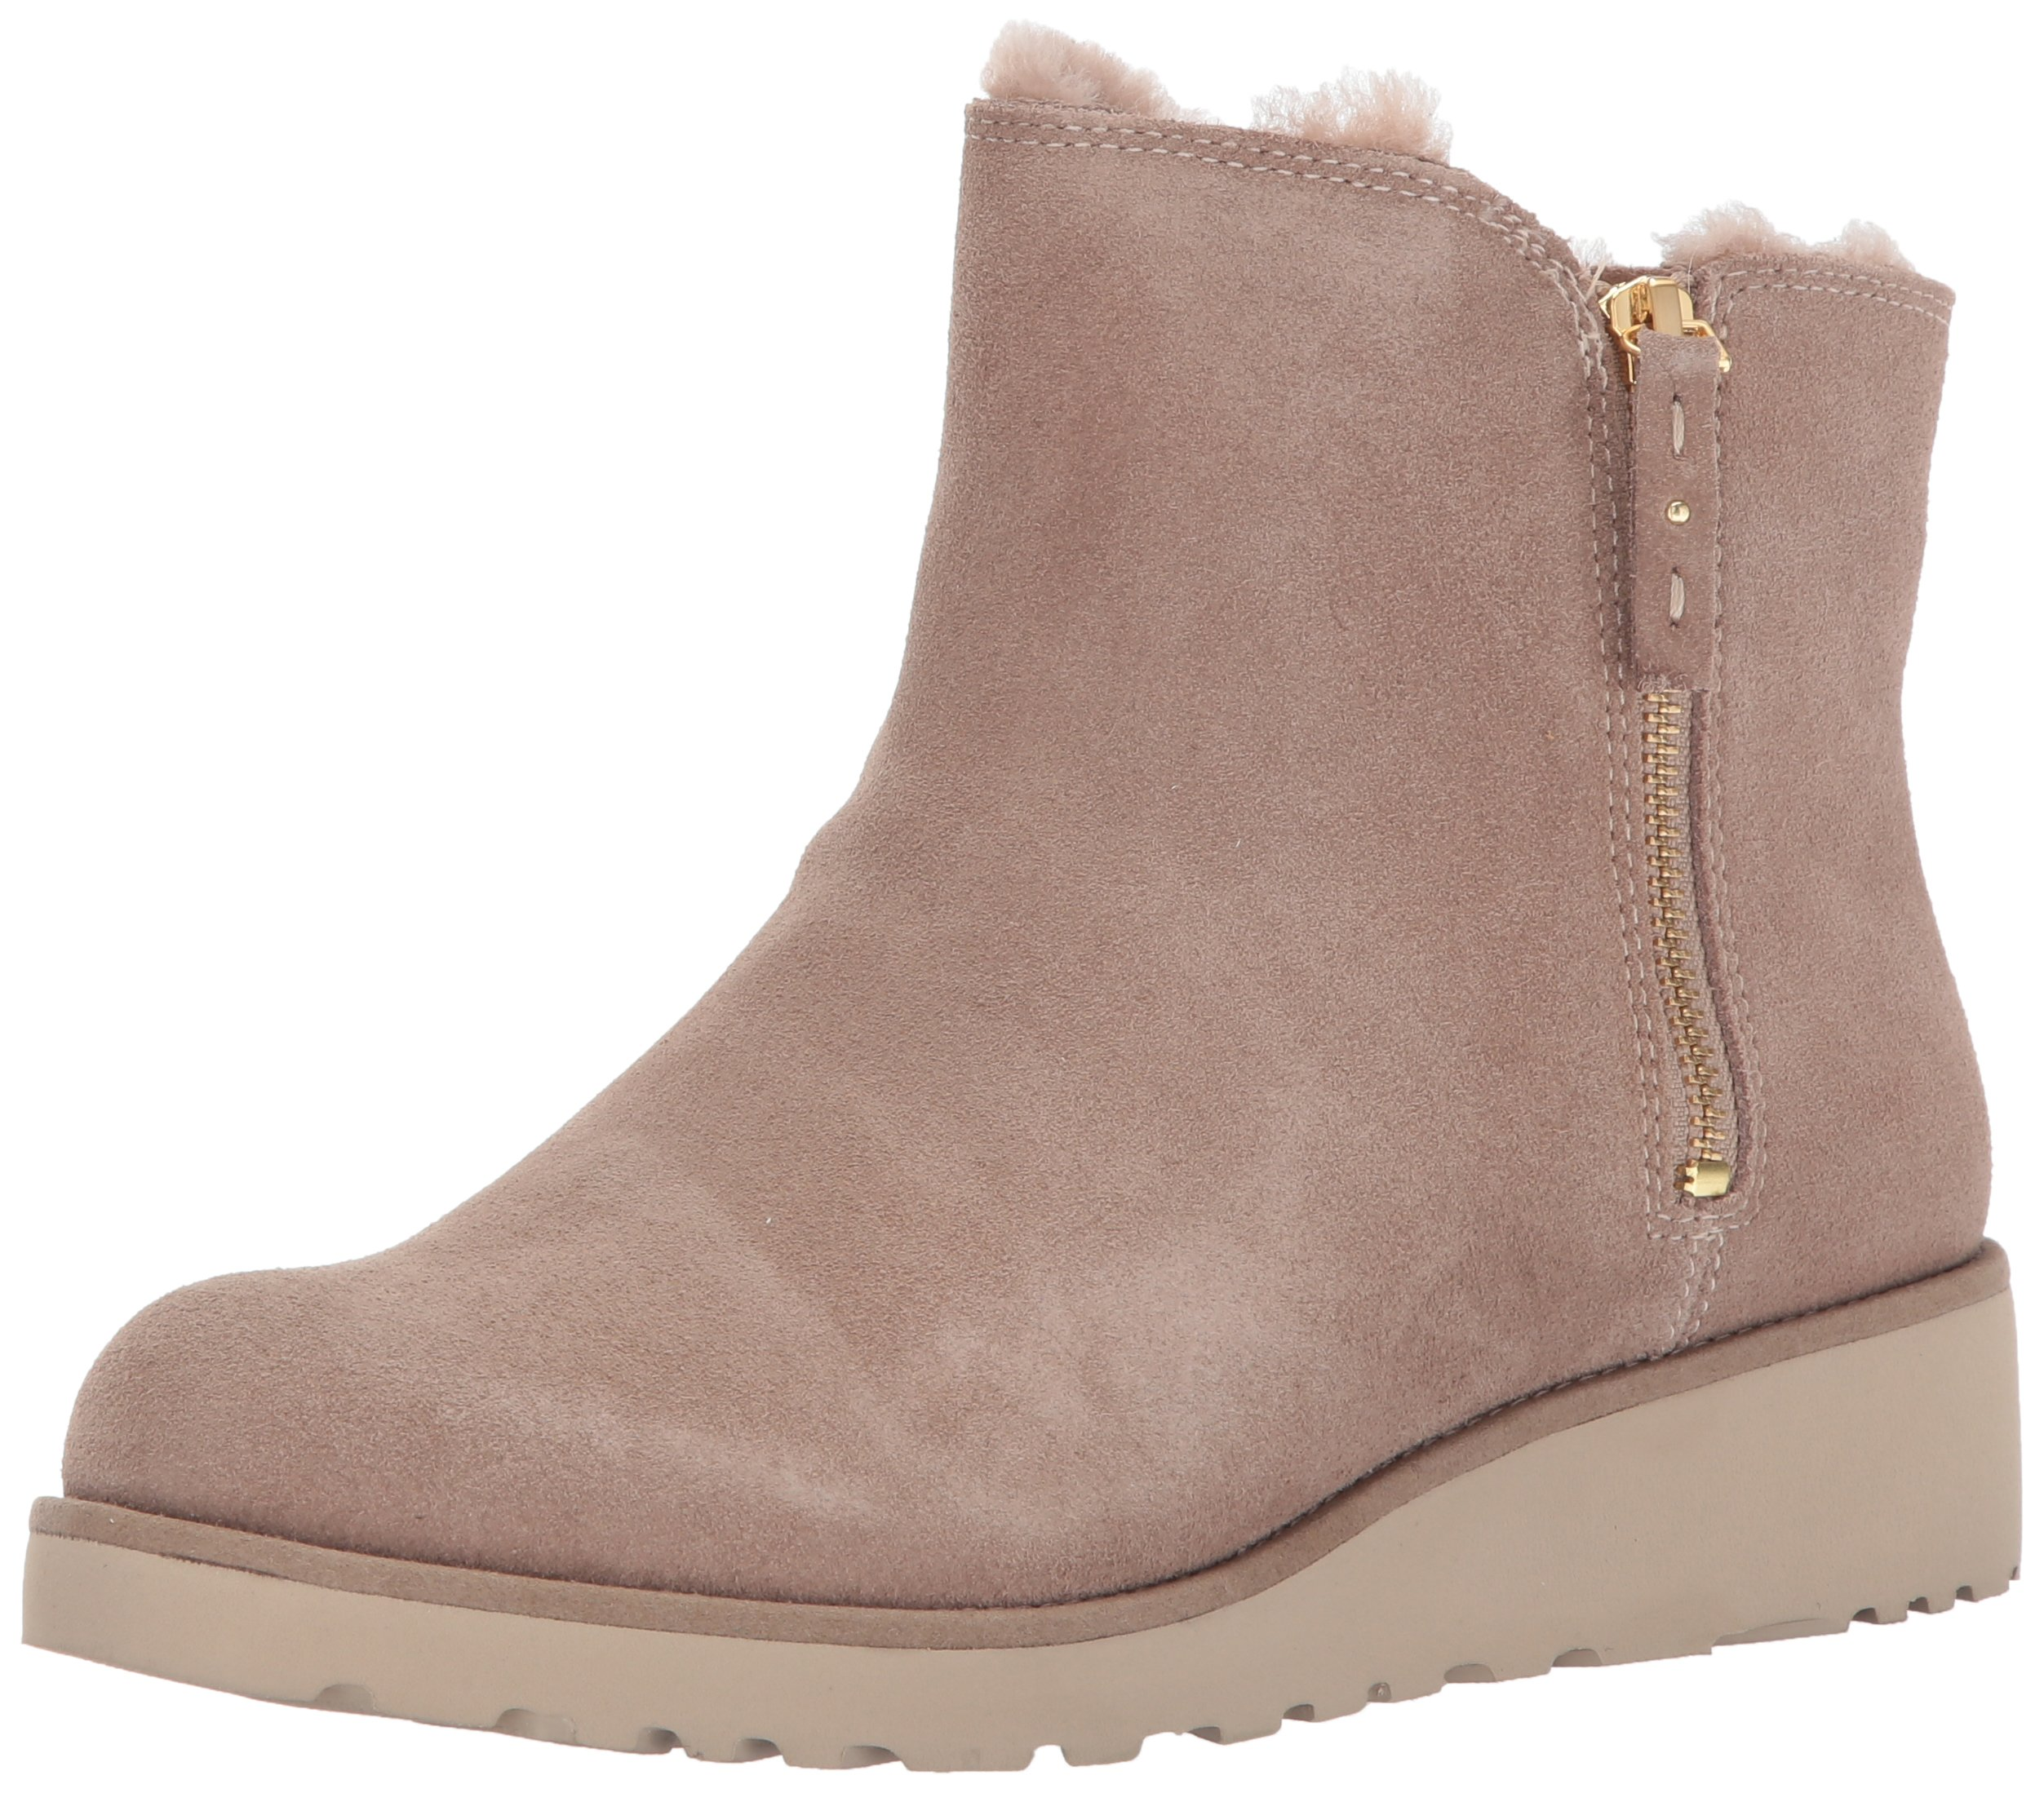 UGG Women's Shala Slouch Boot, Fawn, 7 M US